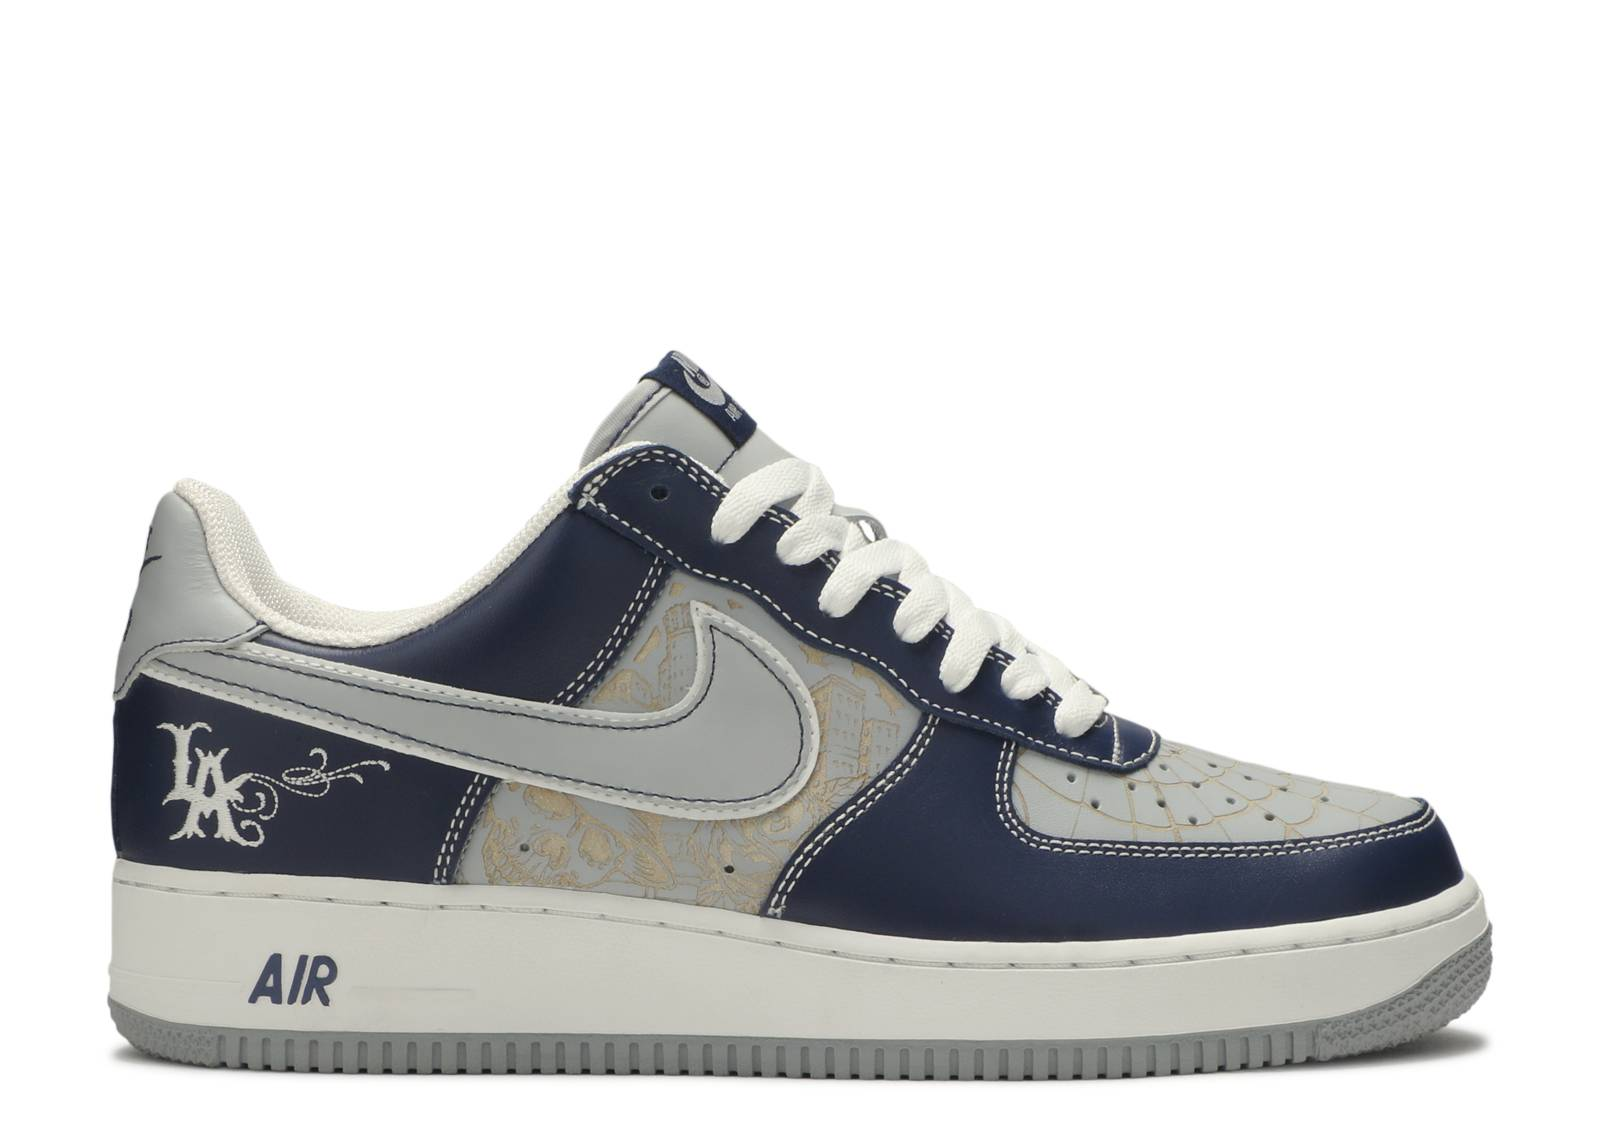 air force 1 midnight navy silver white. Black Bedroom Furniture Sets. Home Design Ideas